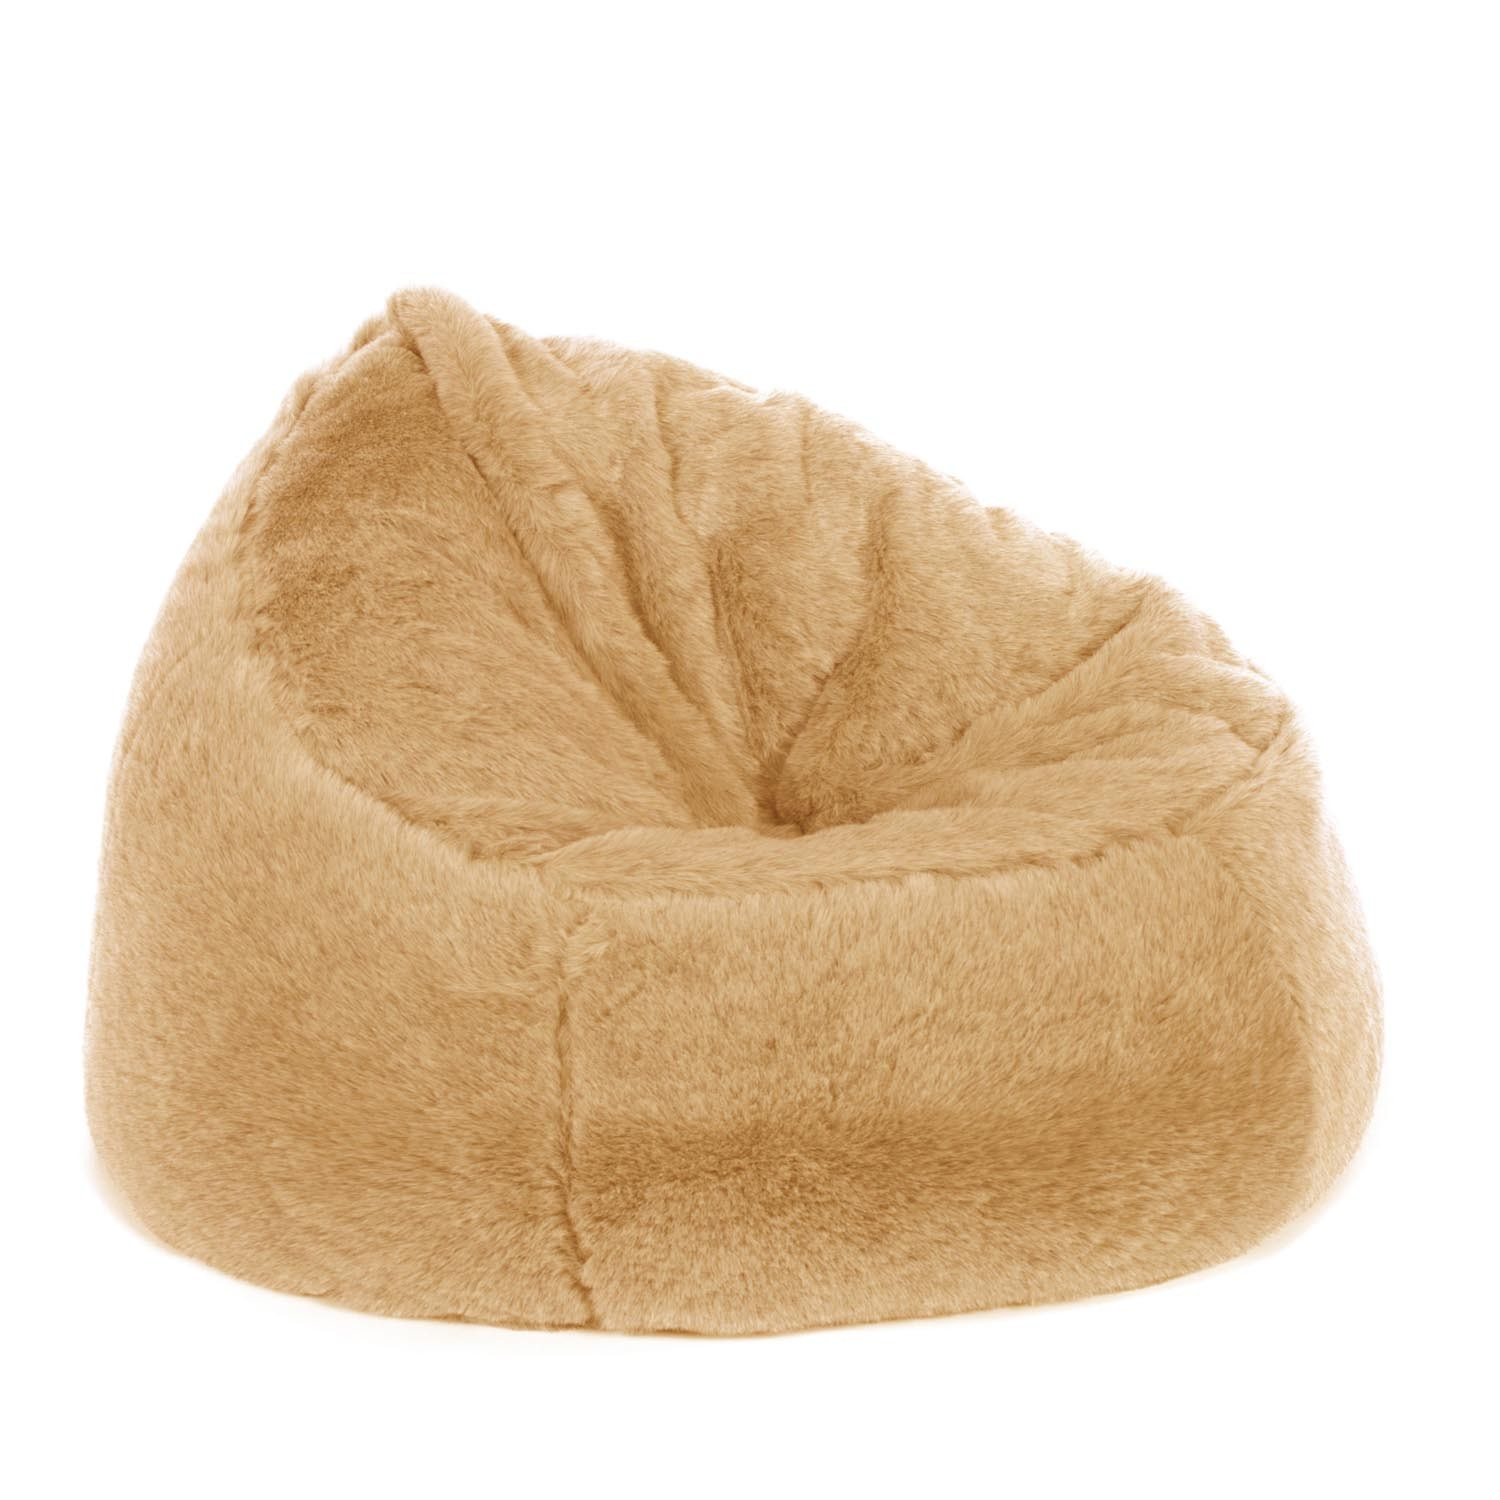 Brilliant Faux Fur Bean Bag Chair Top Blog For Chair Review Pdpeps Interior Chair Design Pdpepsorg